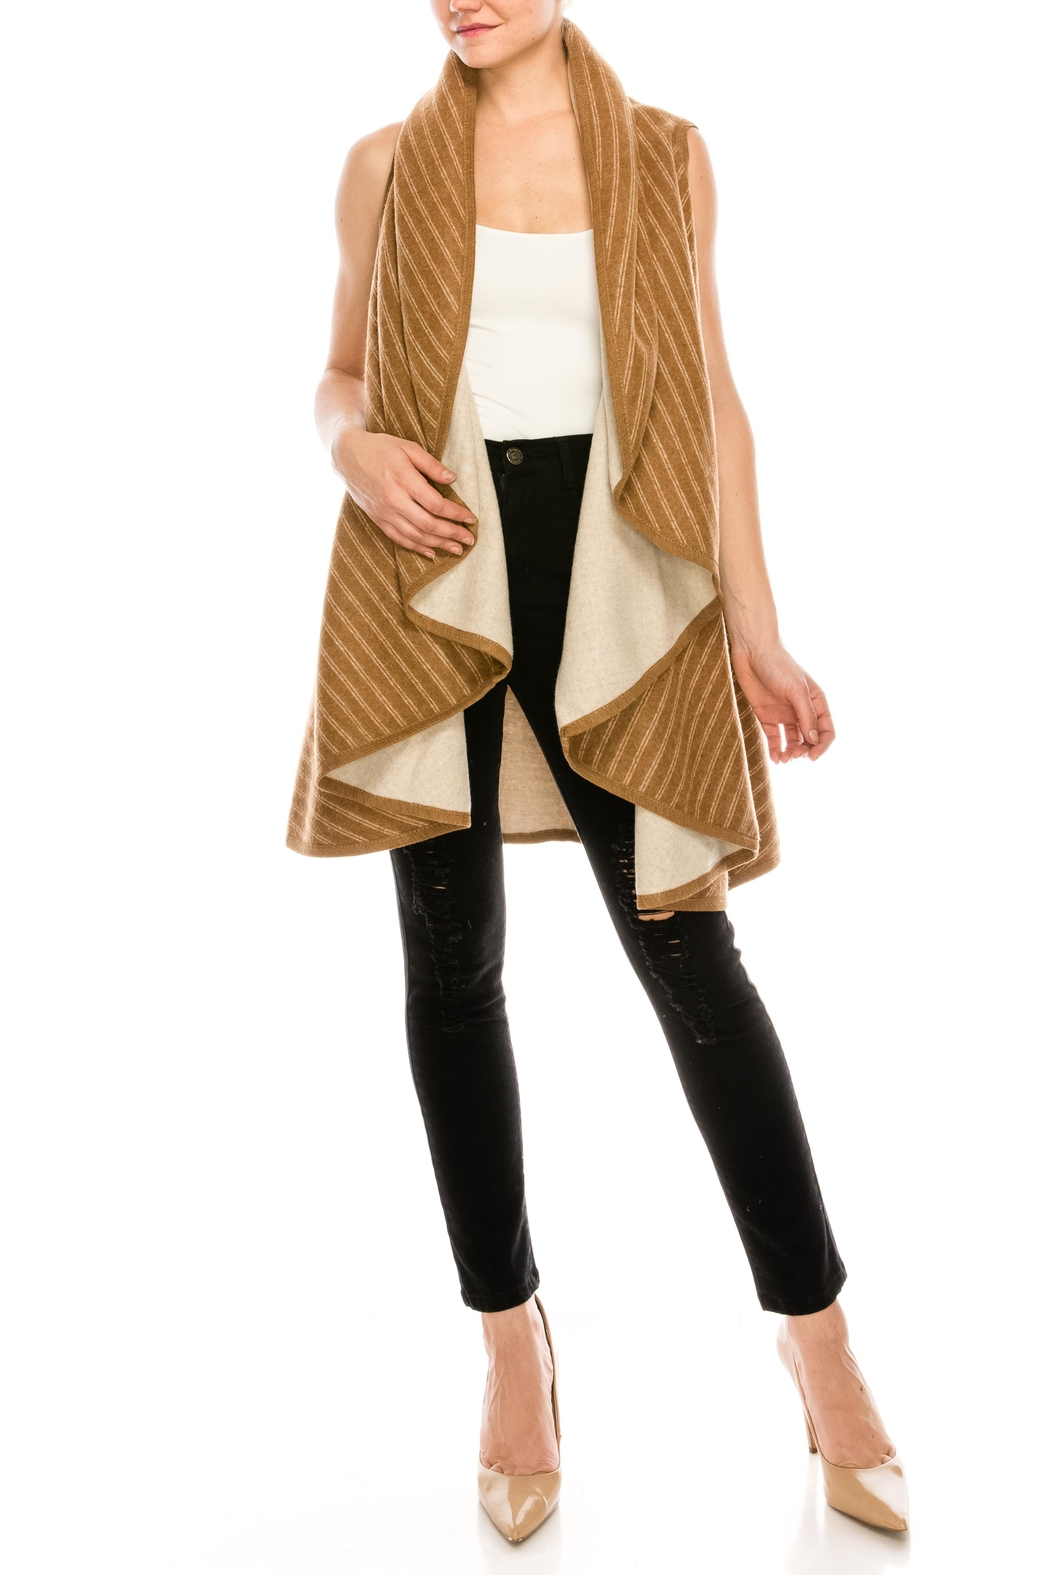 Look by M Reversible Shawl Scarf - Main Image